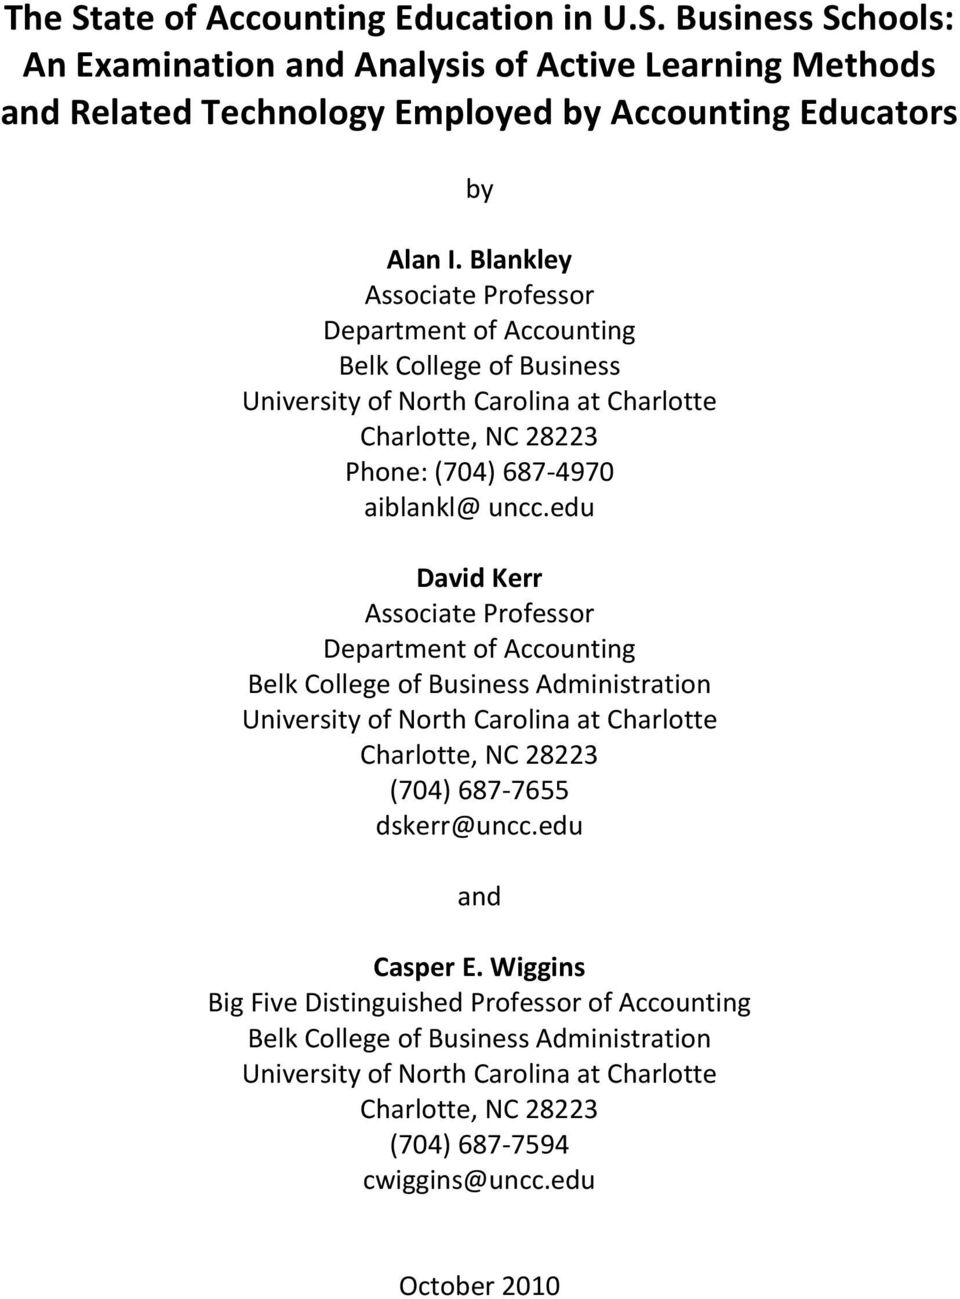 edu David Kerr Associate Professor Department of Accounting Belk College of Business Administration University of North Carolina at Charlotte Charlotte, NC 28223 (704) 687-7655 dskerr@uncc.